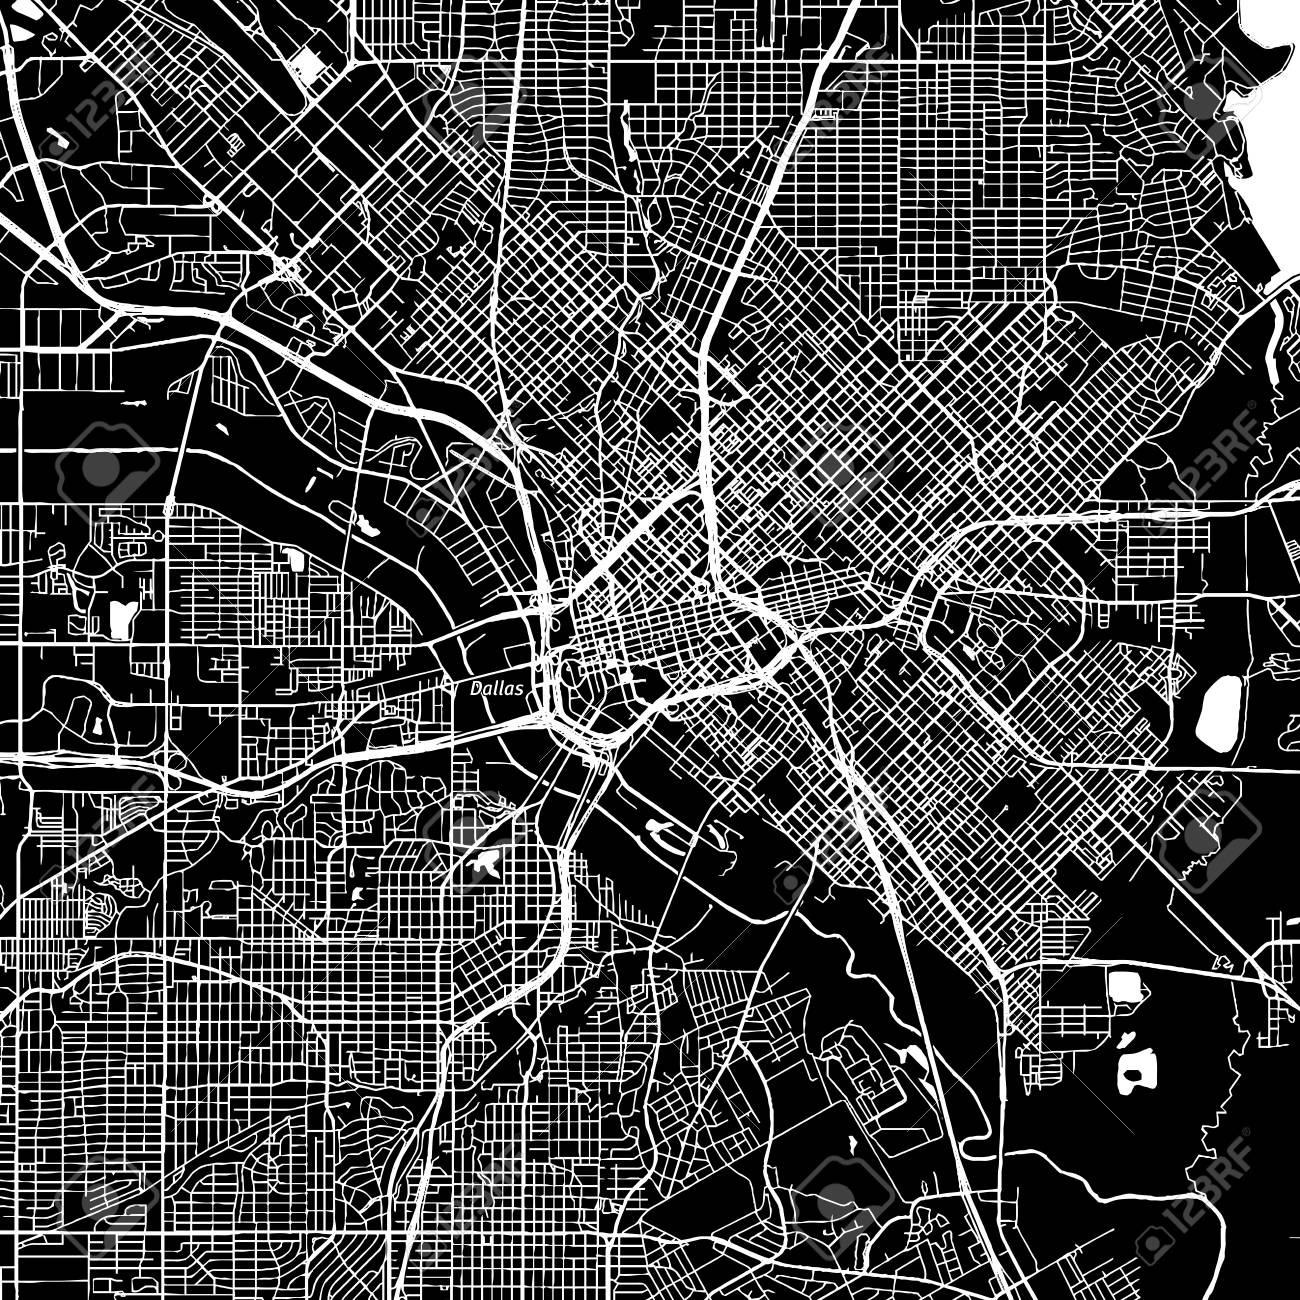 Dallas City Map on washington dc city map, dfw area map, yoakum city map, princeton city map, dallas old maps, fort worth texas city limits map, university of chicago city map, palestine city map, grimes city map, houston city map, denton city map, greeneville city map, new roads city map, richardson city map, dallas population 2014, lewisville city map, adairsville city map, johnson county city map, ft worth city map, waxahachie city map,